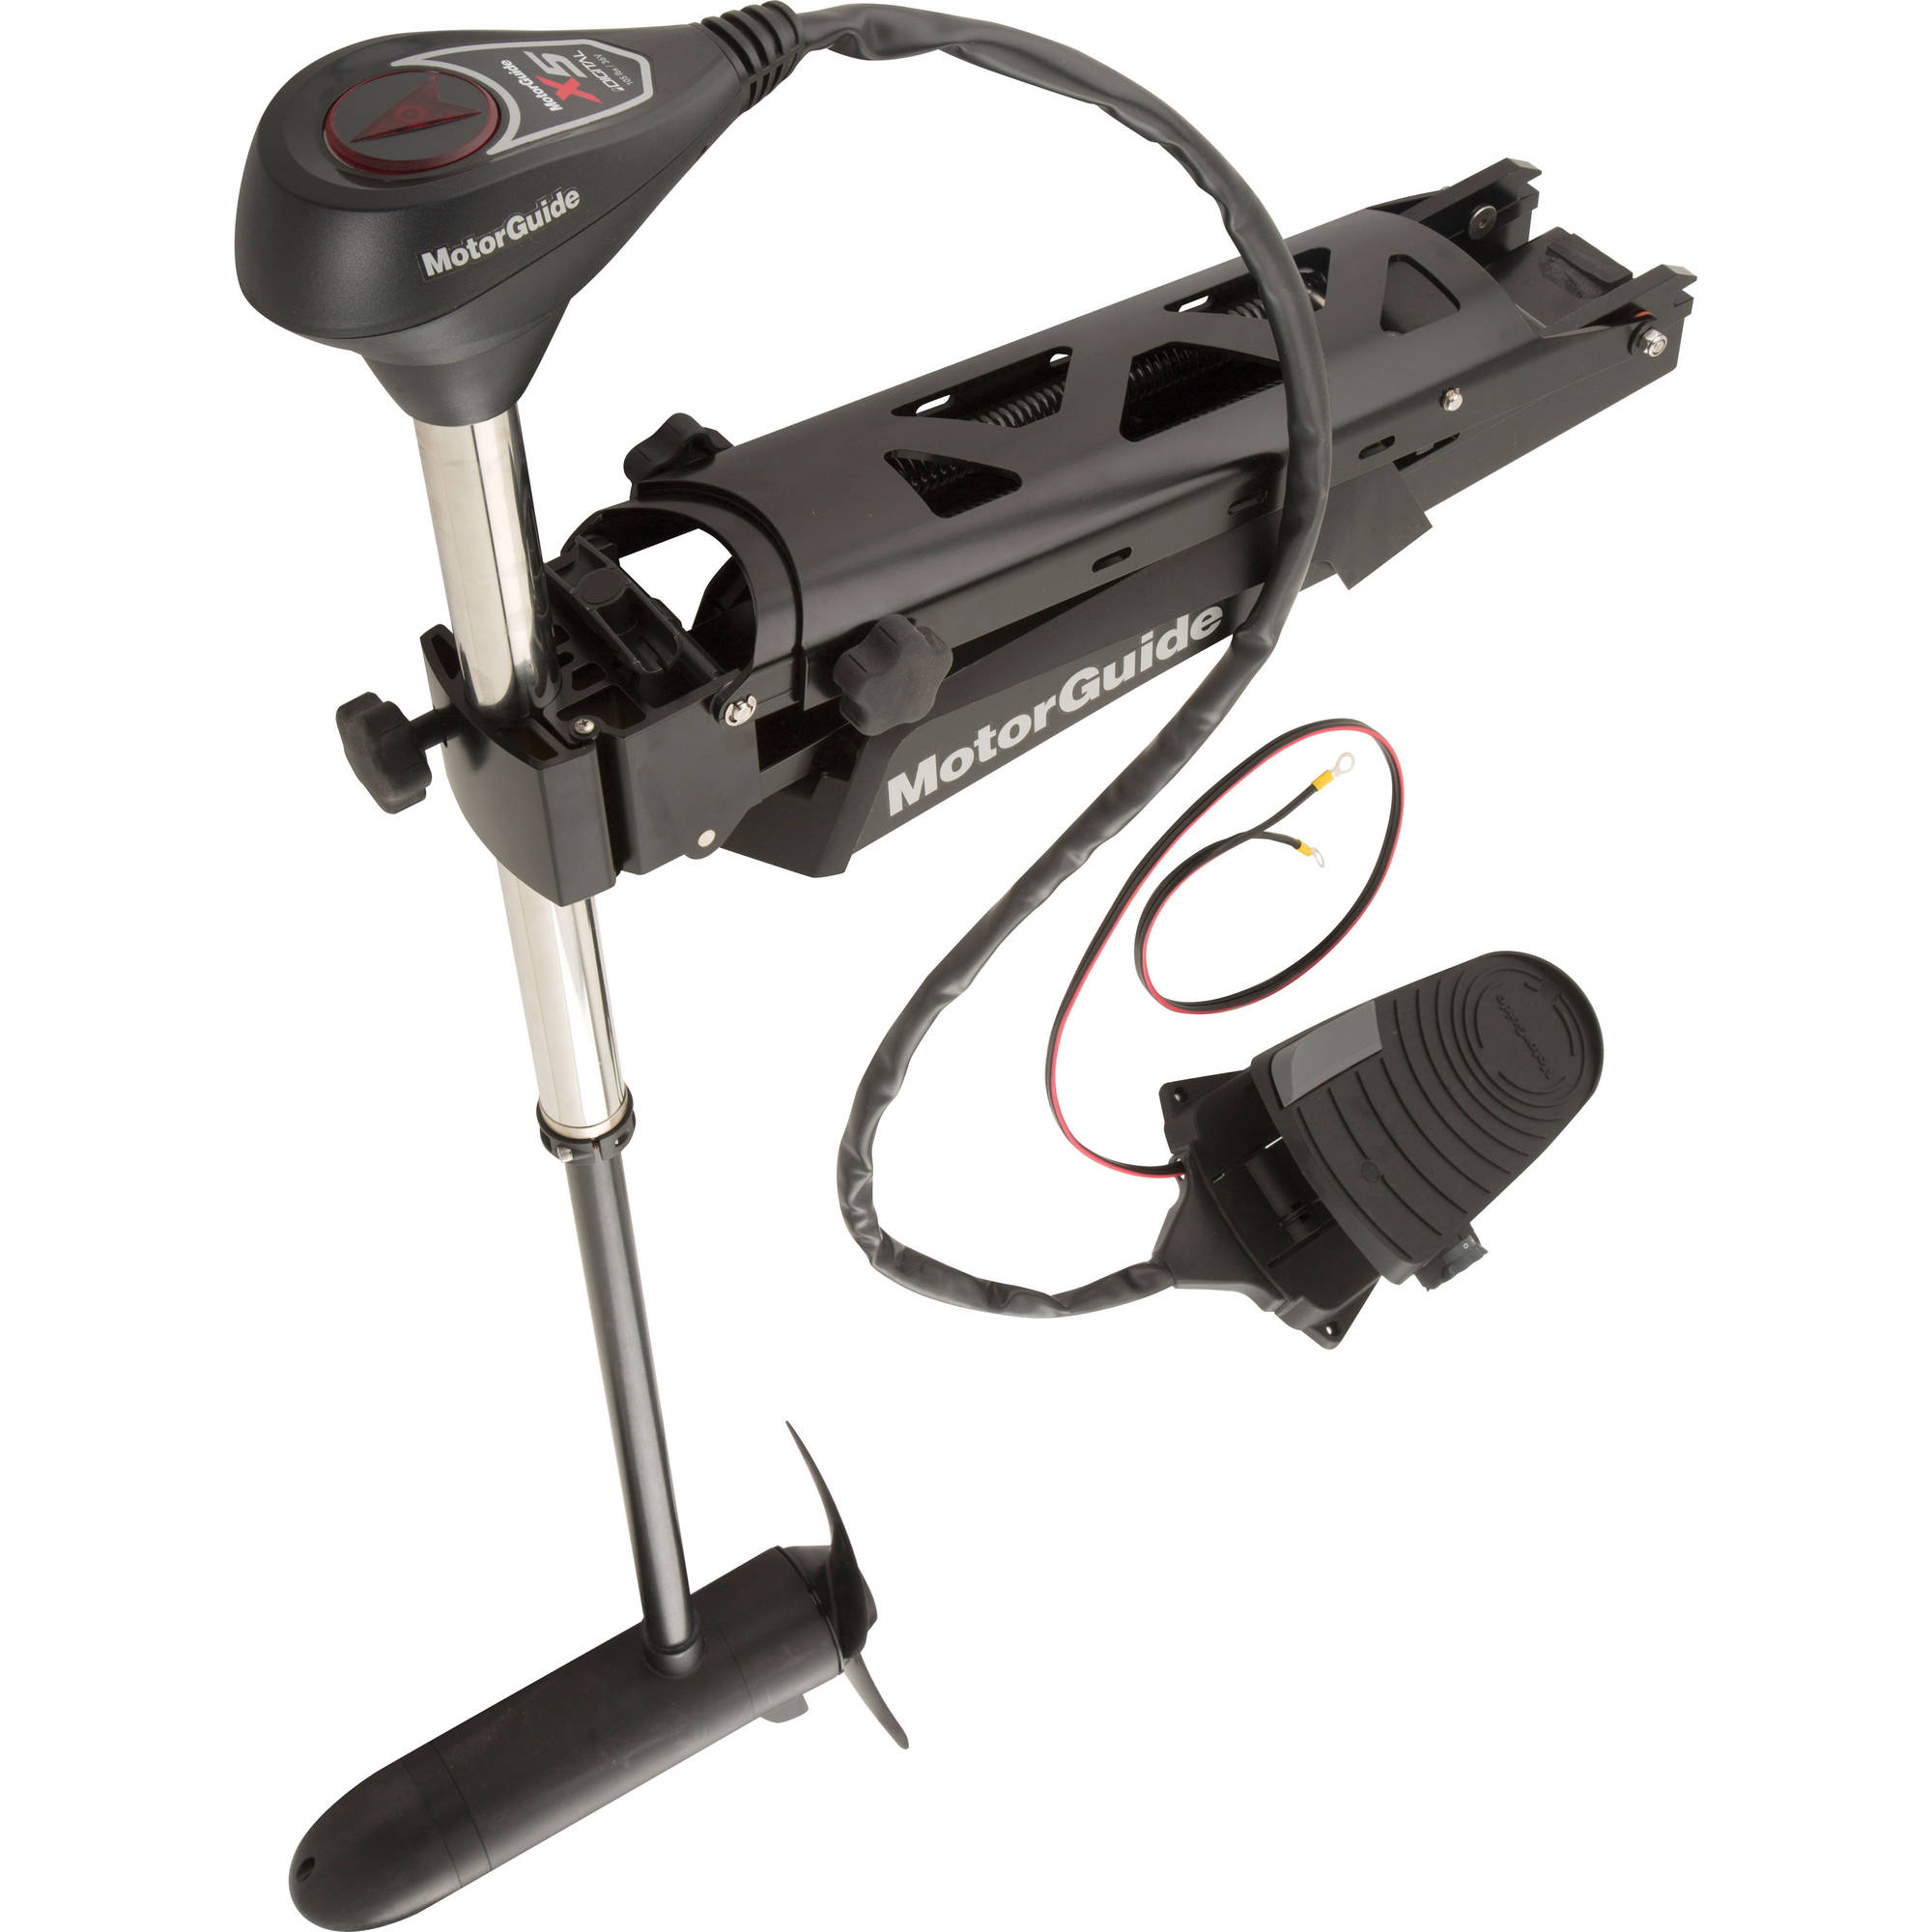 MotorGuide X5 36V Foot-Control Bow Mount Digital Variable Speed Freshwater Trolling Motor with Sonar